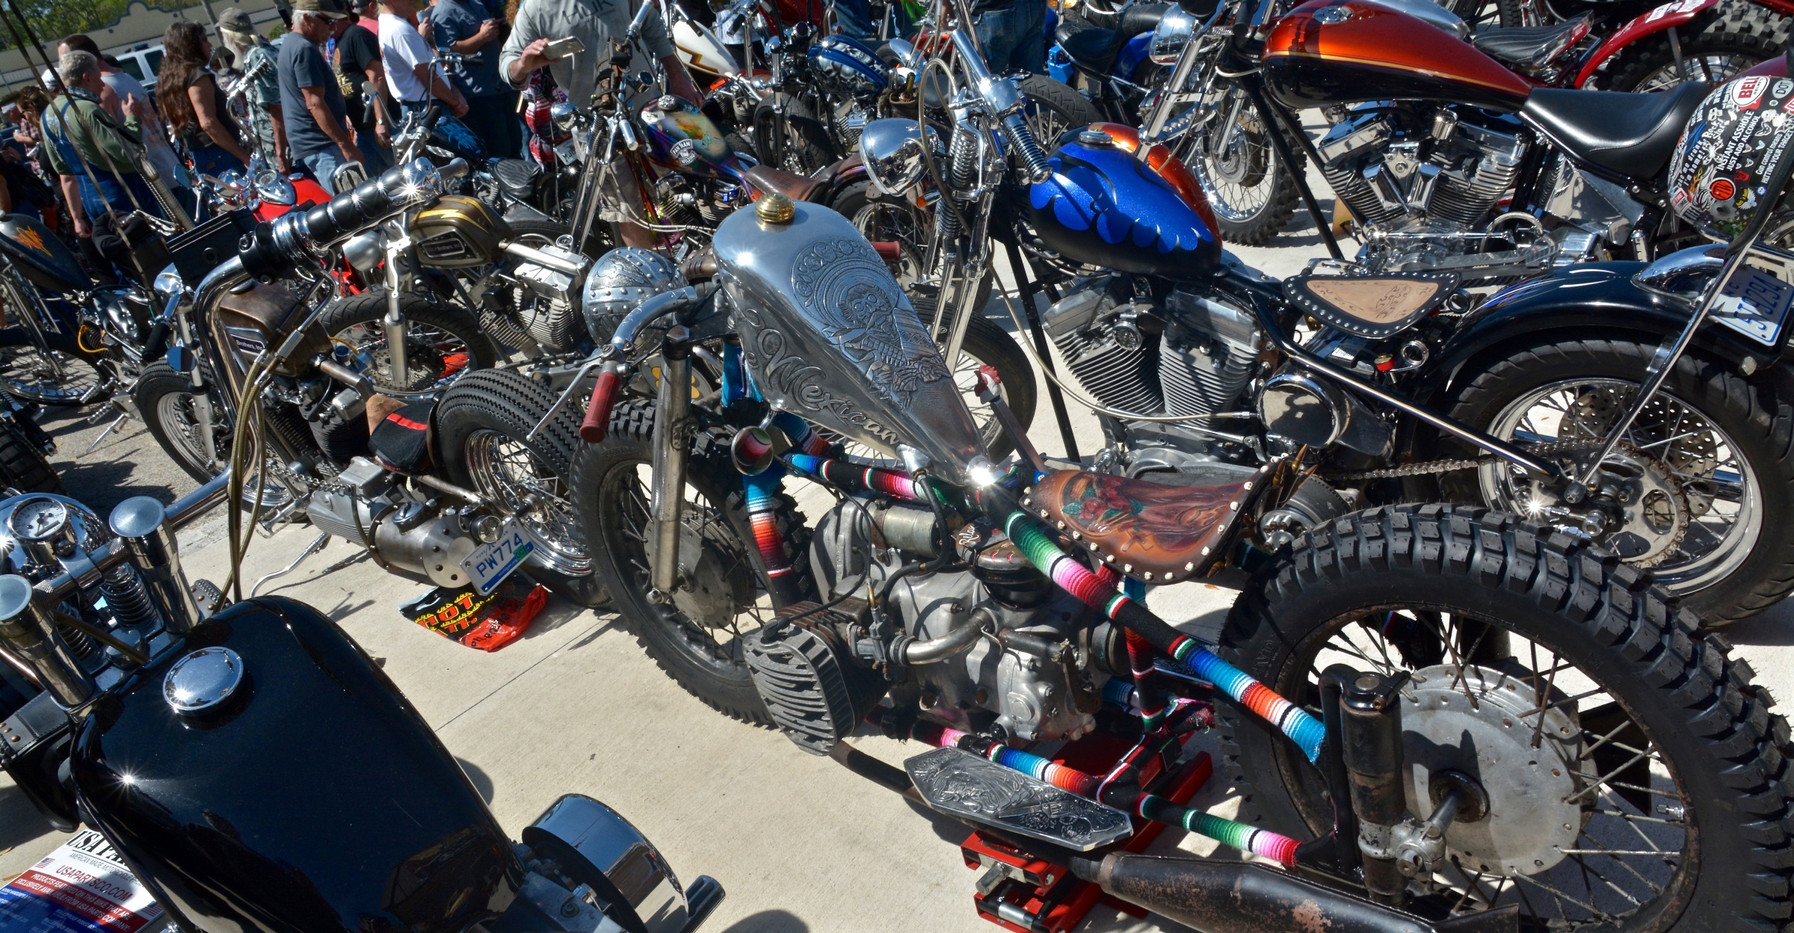 Just some of the bikes.